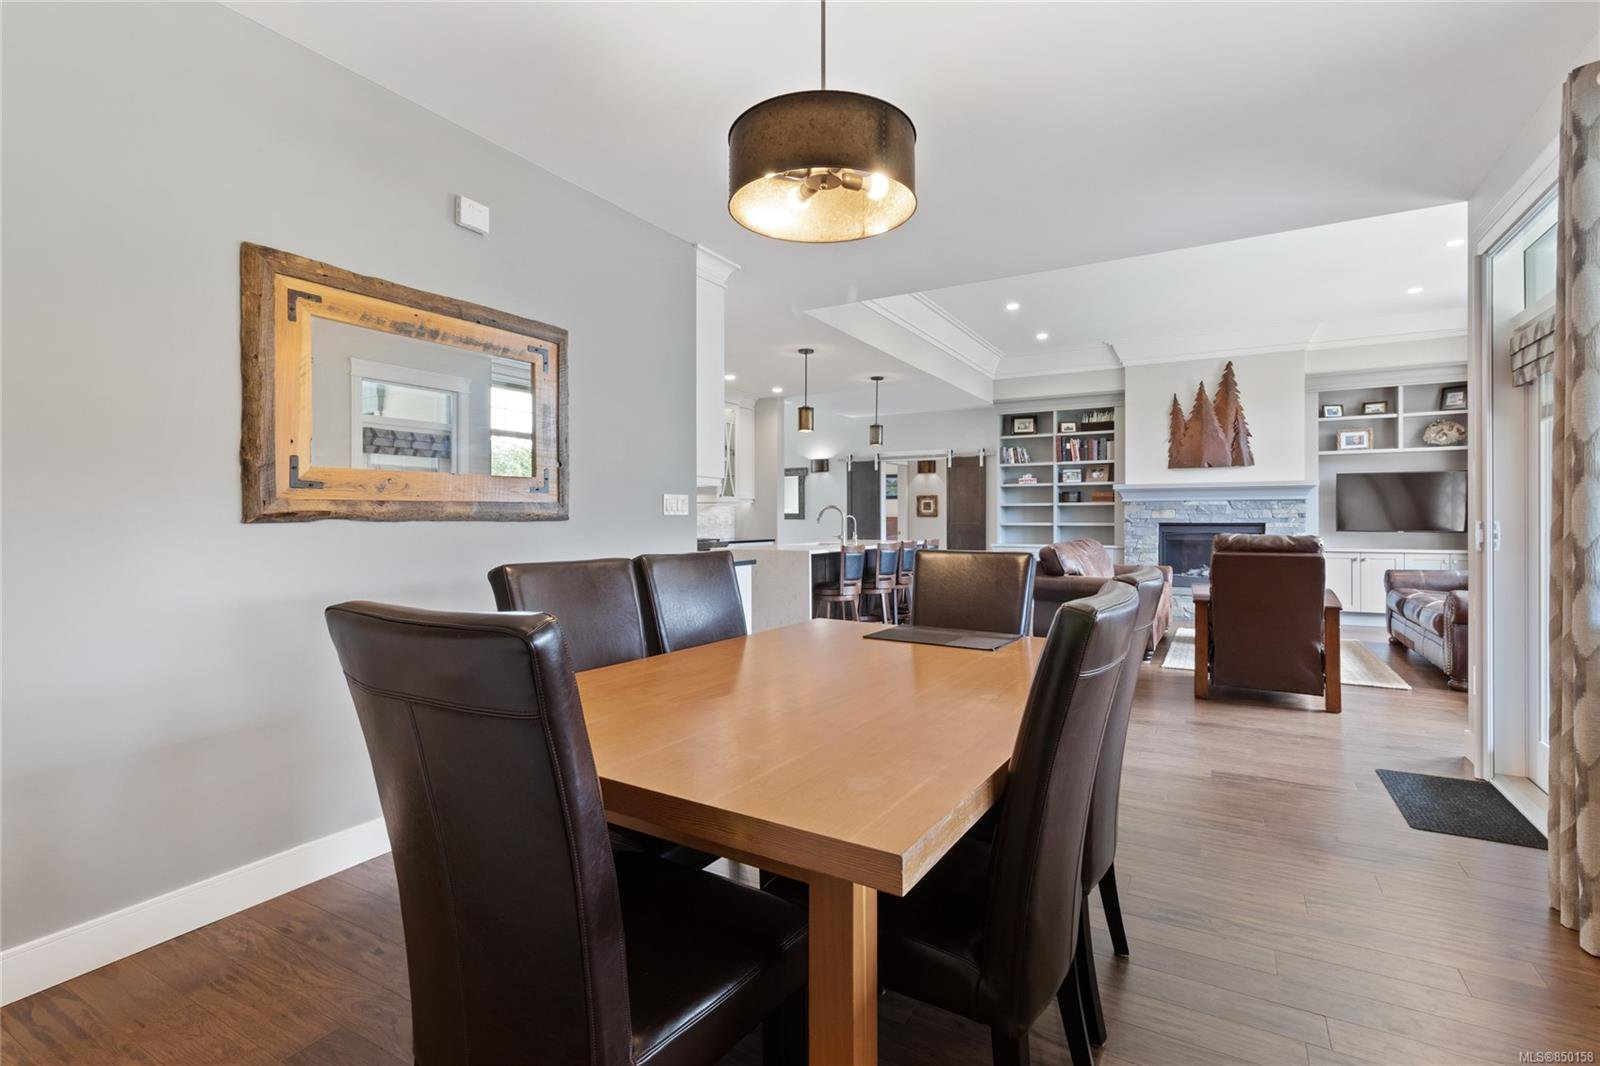 Photo 13: Photos: 3228 Majestic Dr in : CV Crown Isle House for sale (Comox Valley)  : MLS®# 850158